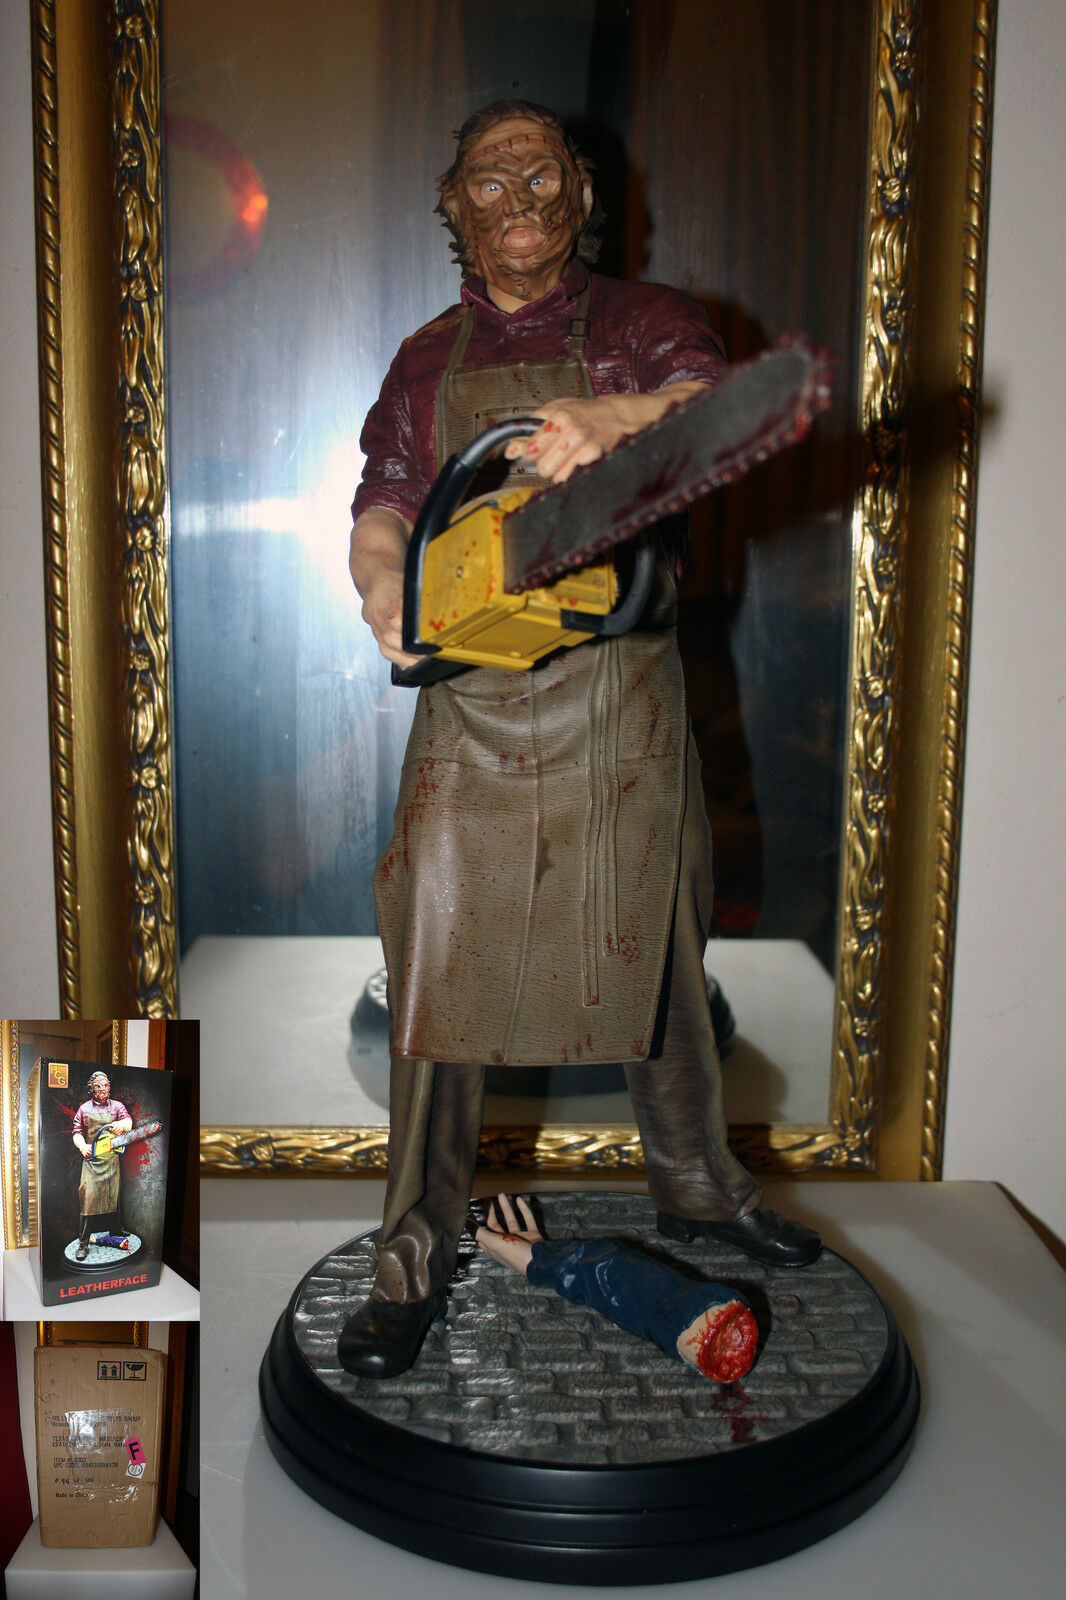 HCG Hollywood Collectibles - Texas Chainsaw Massacre - Pelleface 1/4